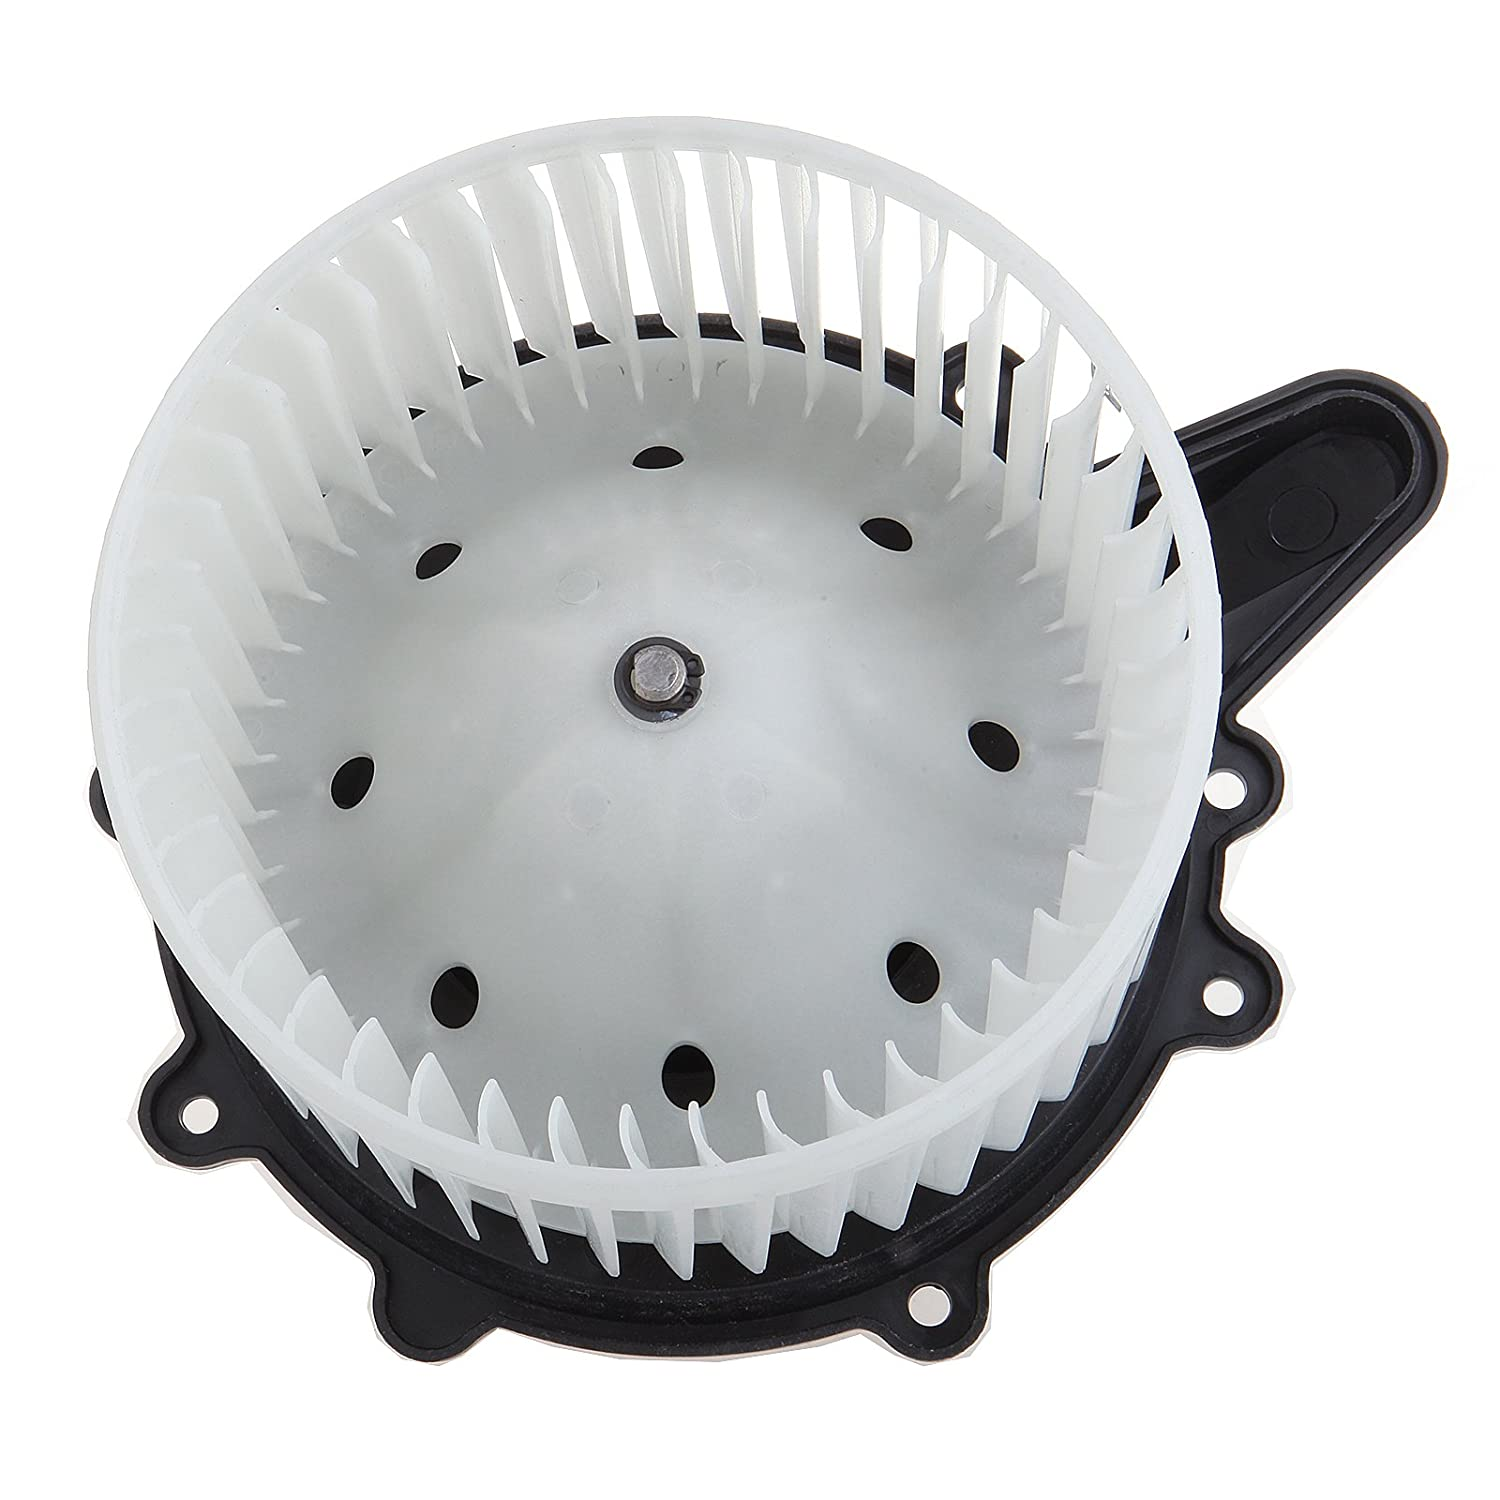 OCPTY A/C Heater Blower Motor ABS w/Fan Cage Air Conditioning HVAC fit for 1997-2002 fit ford Expedition/1997-2003 fit ford F-150/2004-2004 fit ford F-150 Heritage/1997-1999 fit ford F-250 058408-5209-1814366201